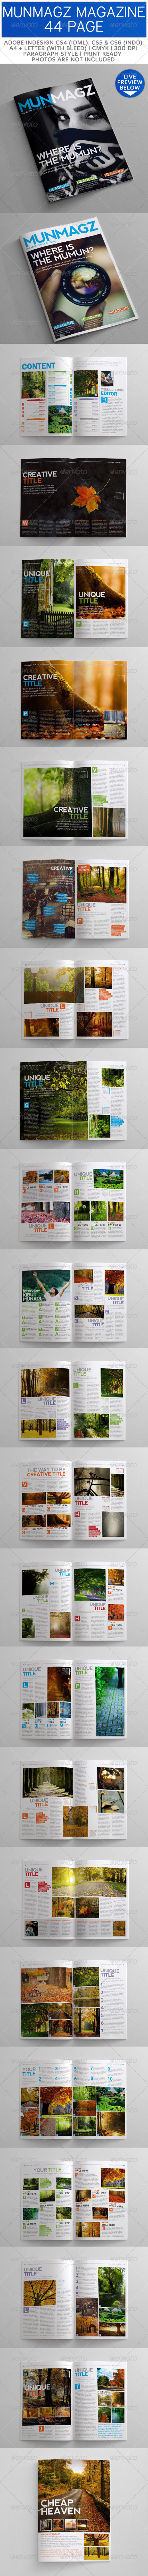 GraphicRiver Clean and Simple Magazine Template 44 Page 3380220